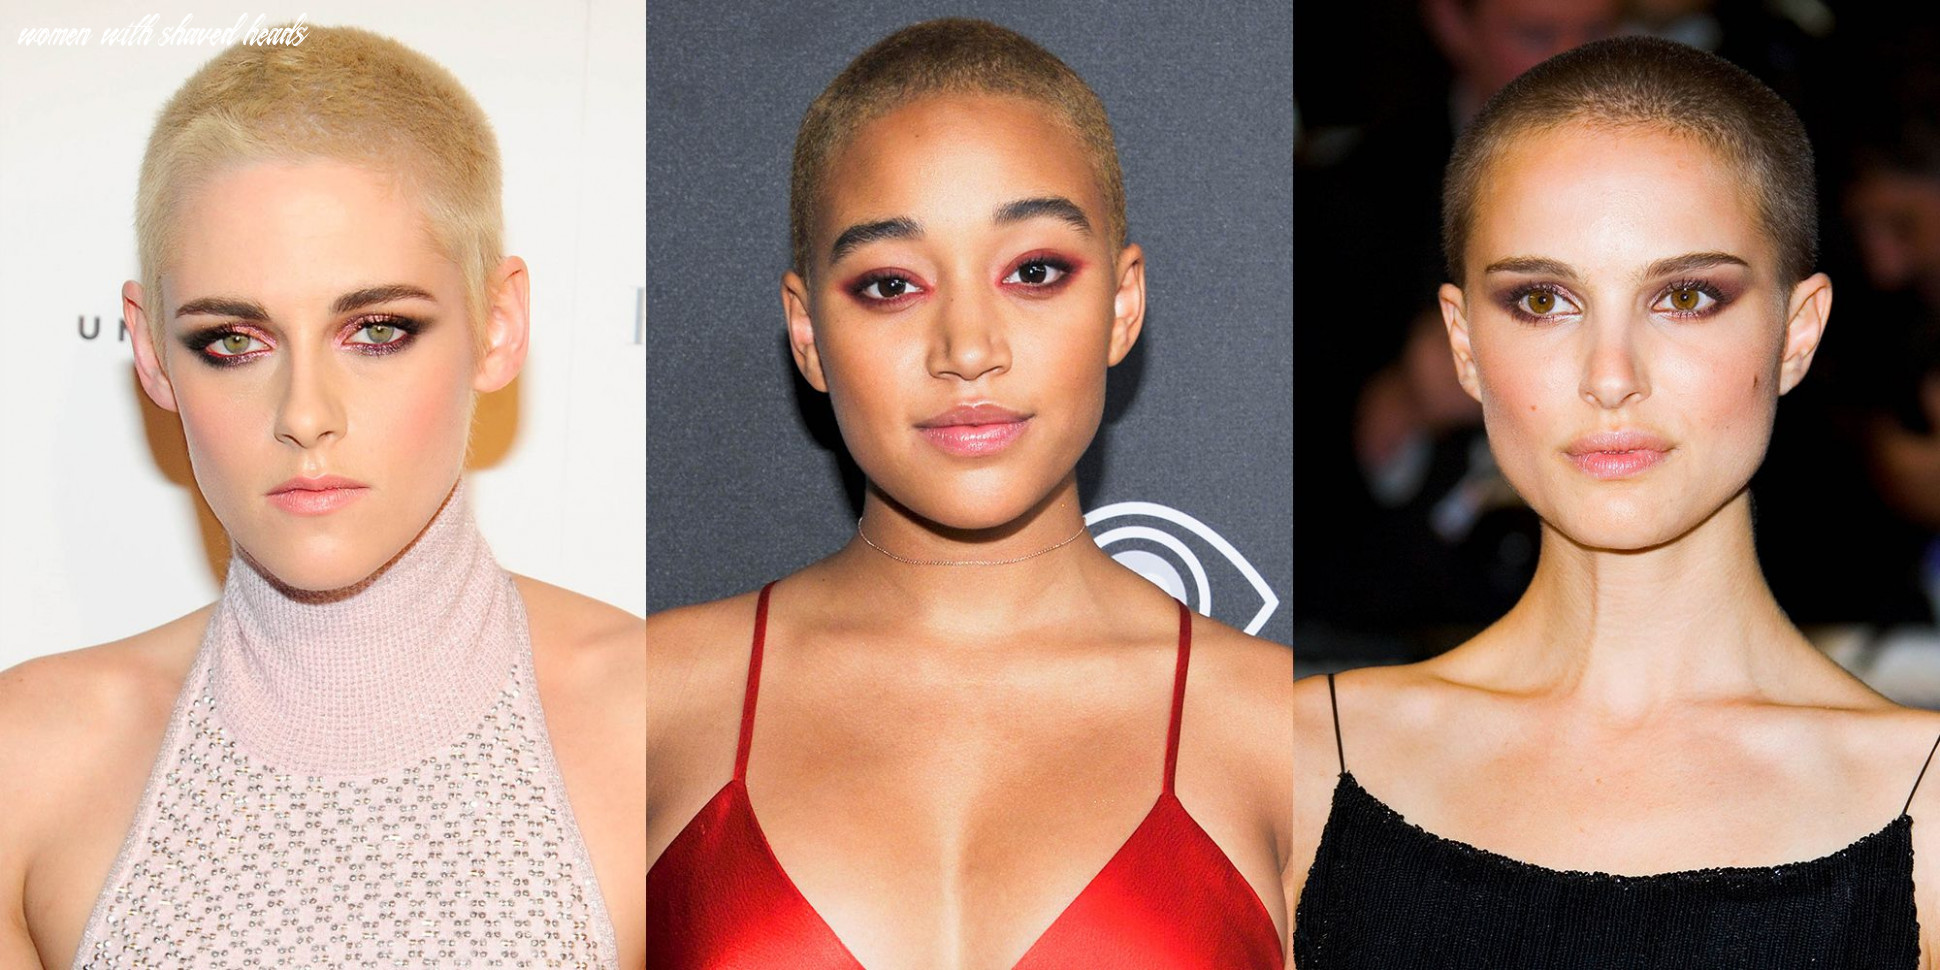 8 women with shaved heads female celebs with buzzcuts women with shaved heads